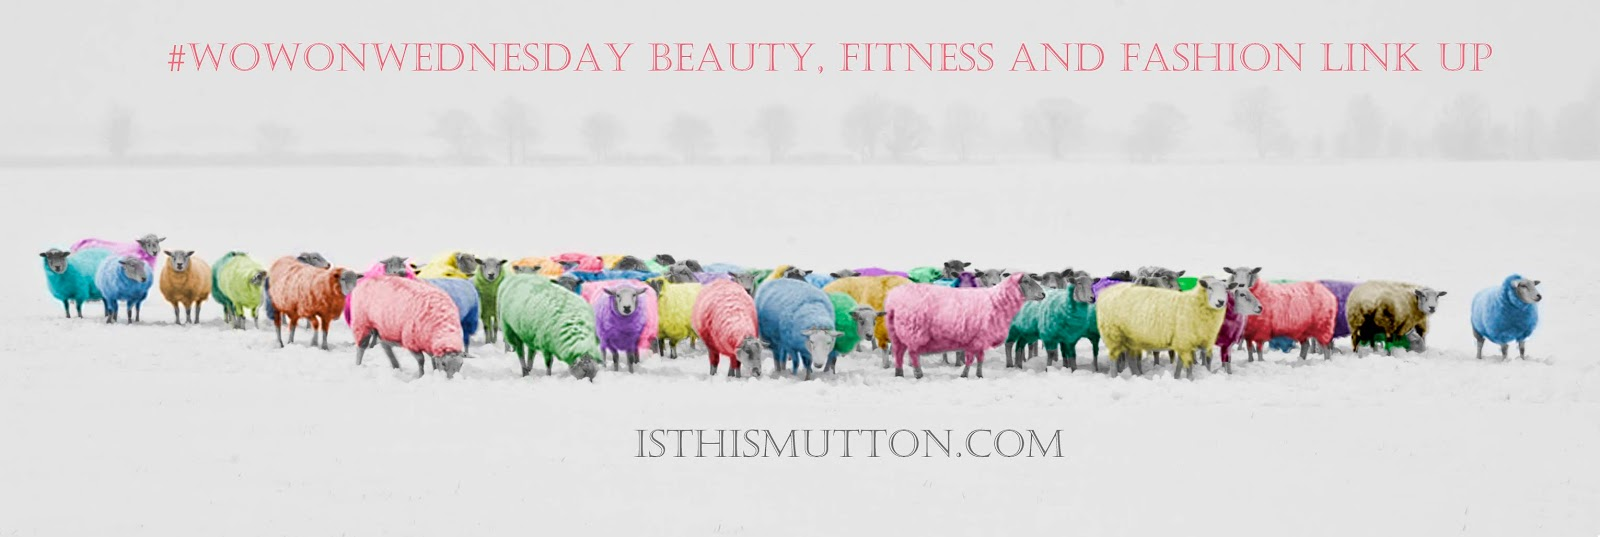 The colourful sheep logo of fashion blog Is This Mutton promoting the Wednesday link up for fashion and beauty bloggers.